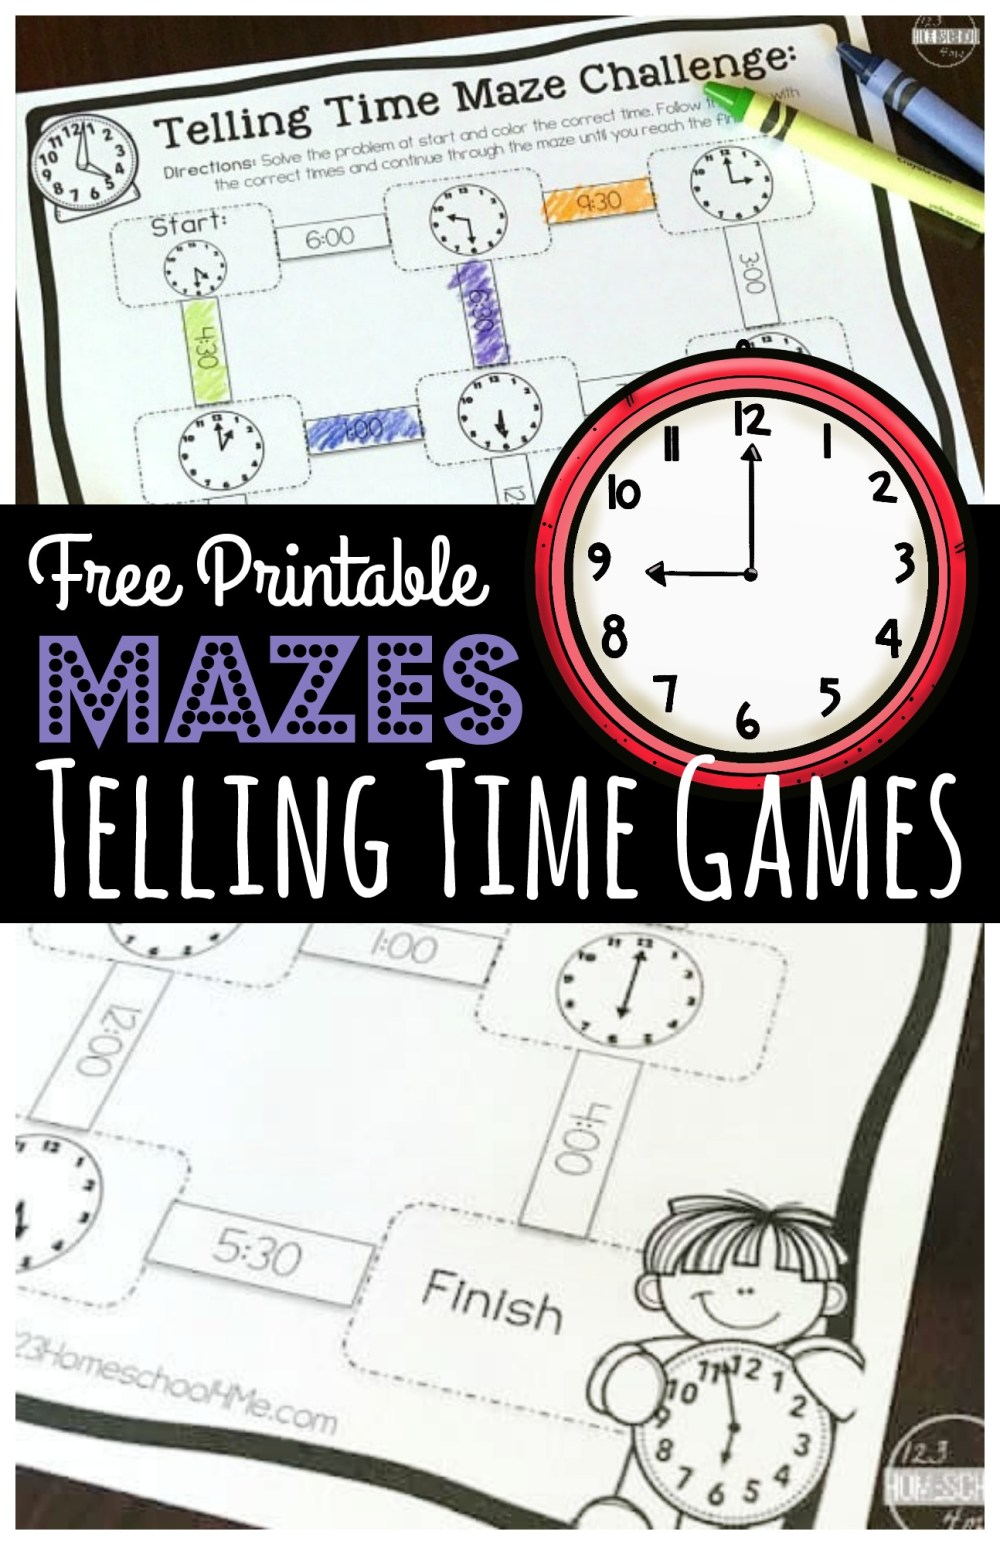 medium resolution of FREE Maze Challenge Telling Time Games Printable